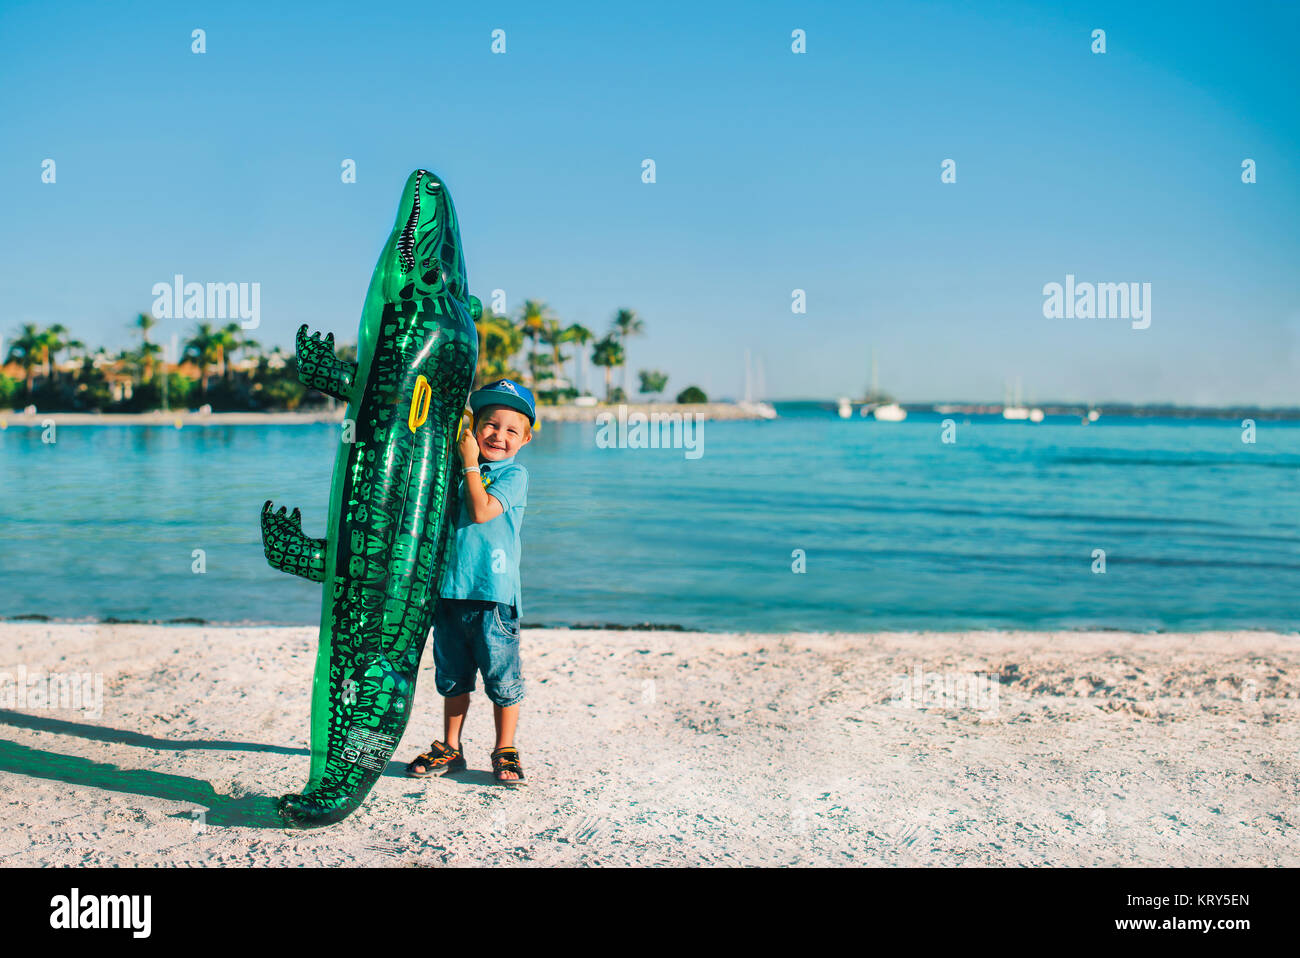 A young boy at the beach with an inflatable crocodile - Stock Image